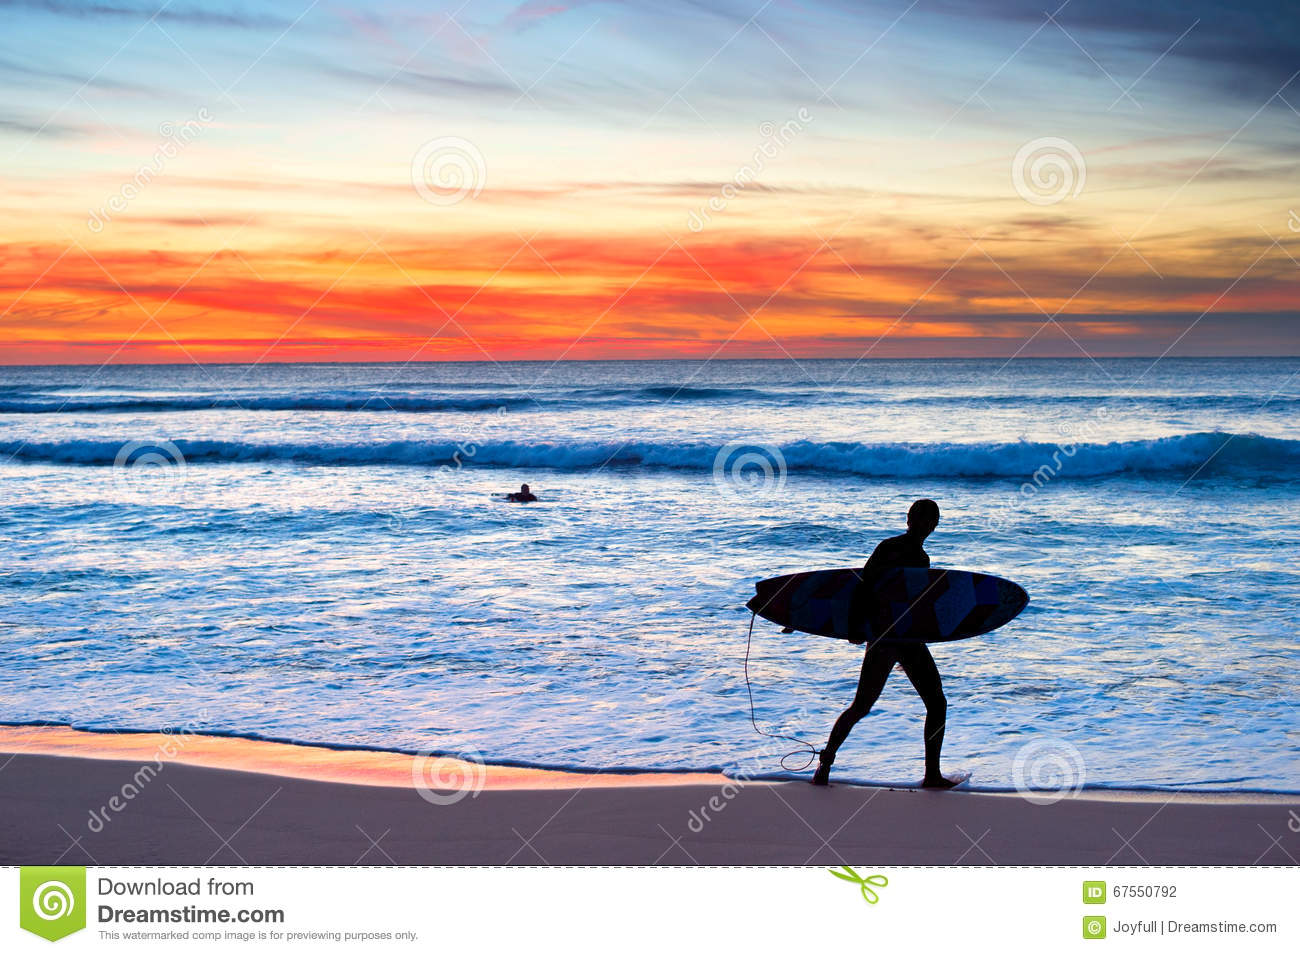 02bd1473bb Silhouette of a surfer on the beach at a beautiful sunset